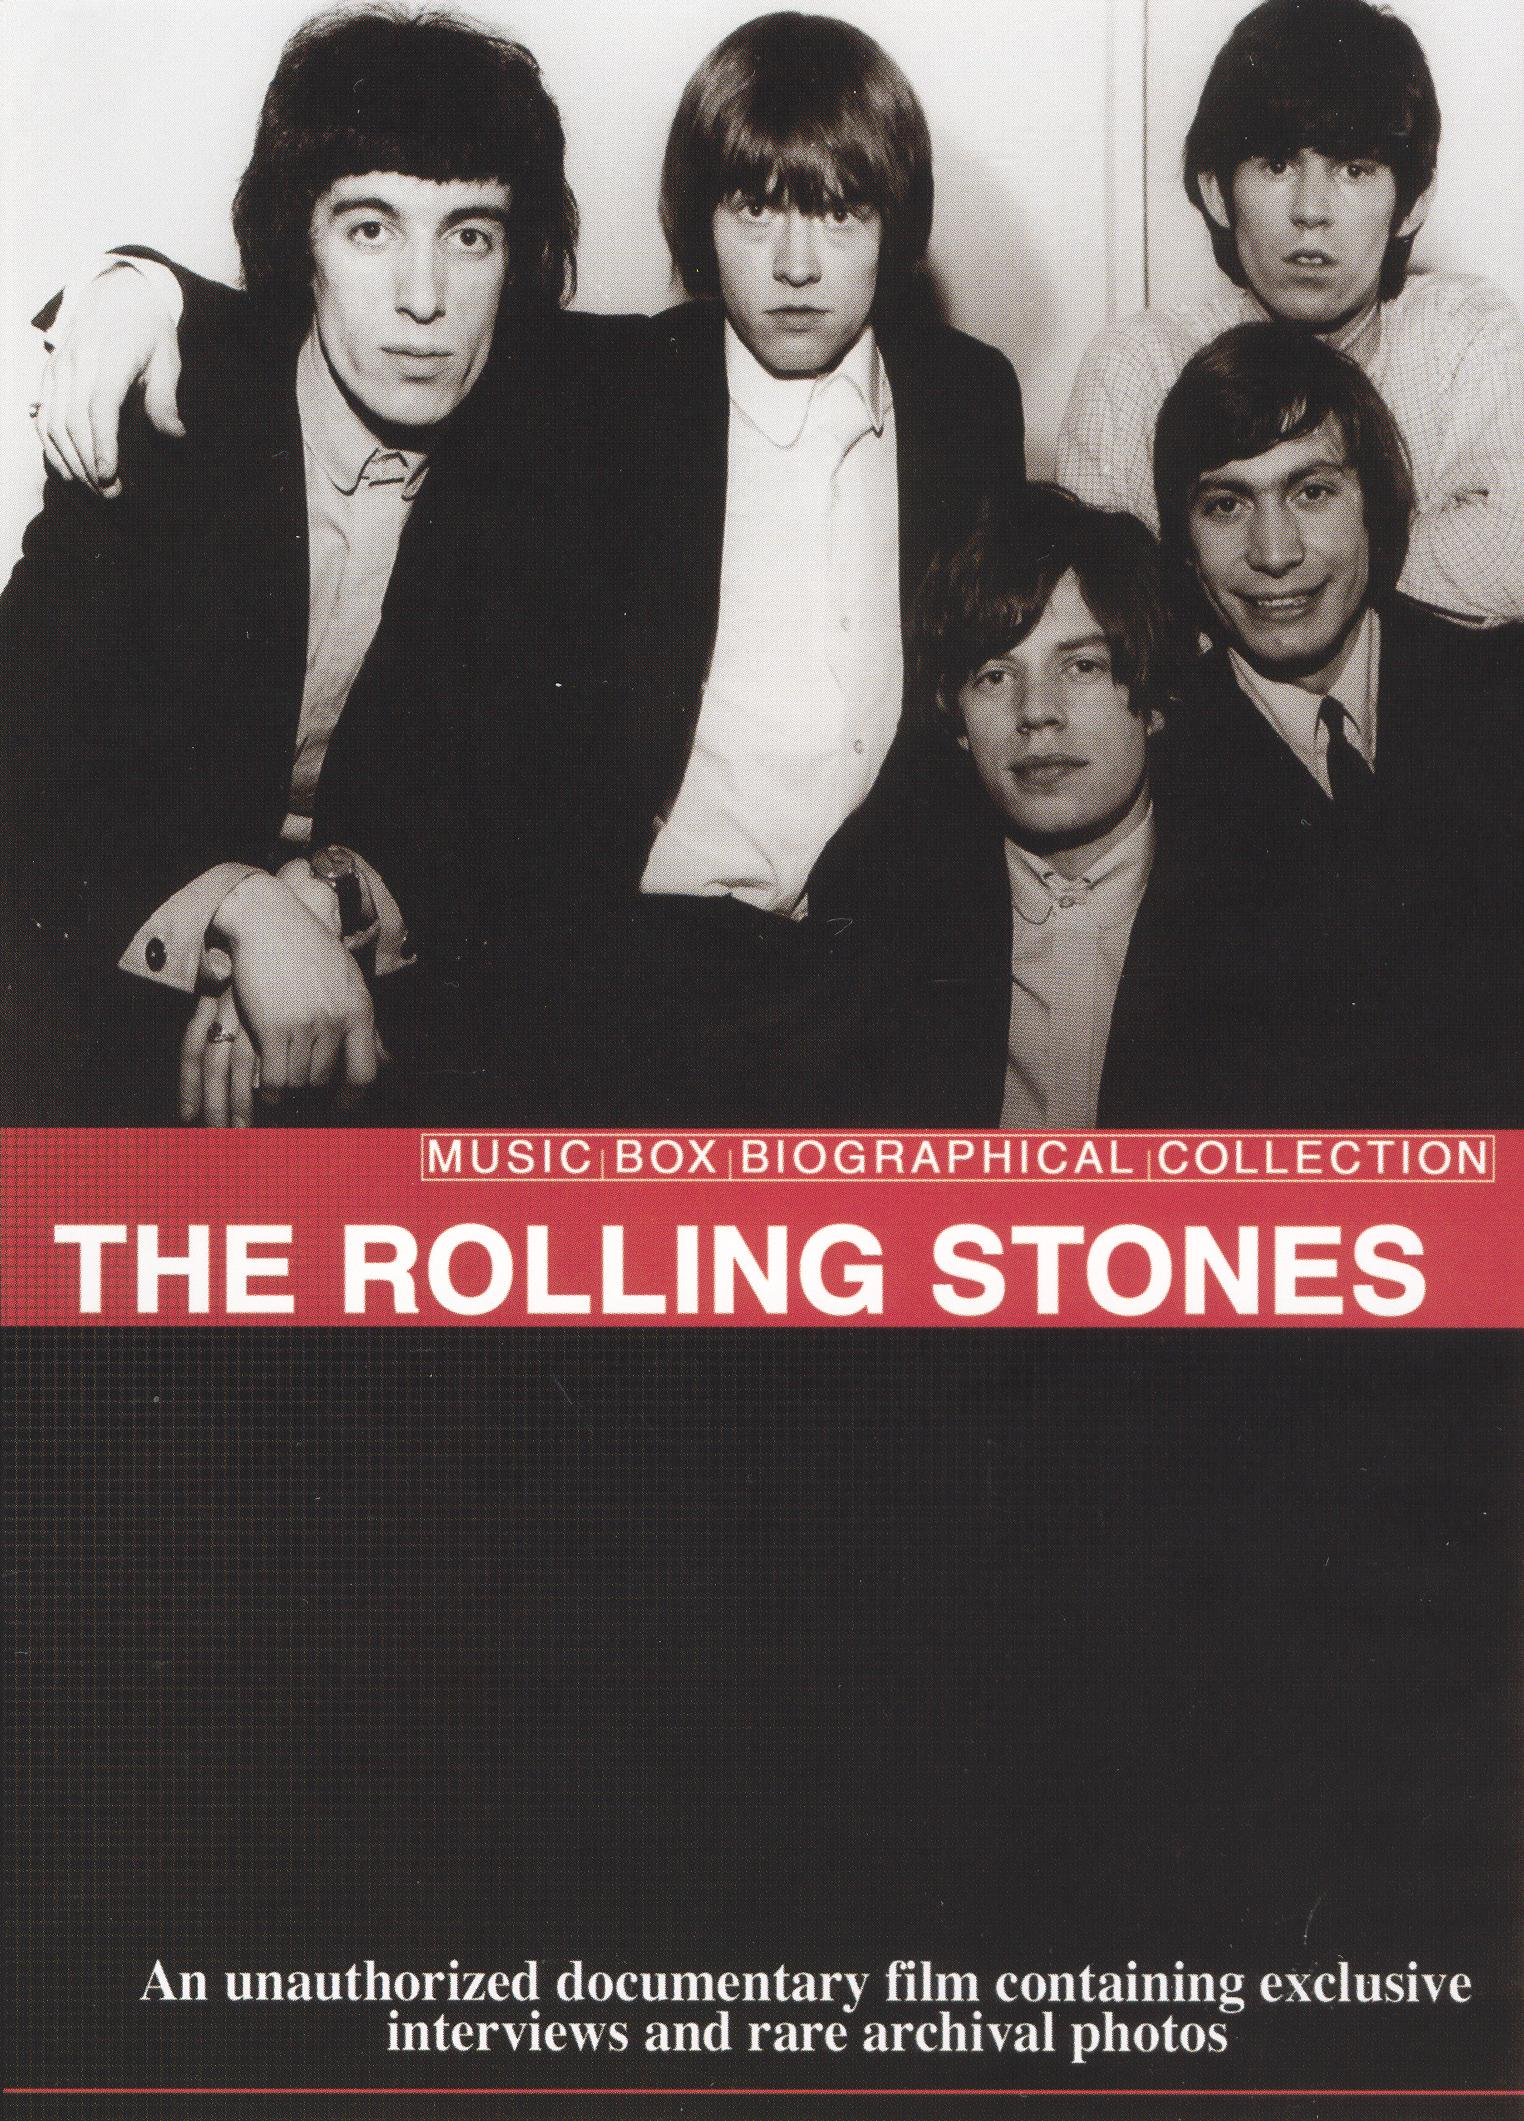 Music Box Biographical Collection: The Rolling Stones